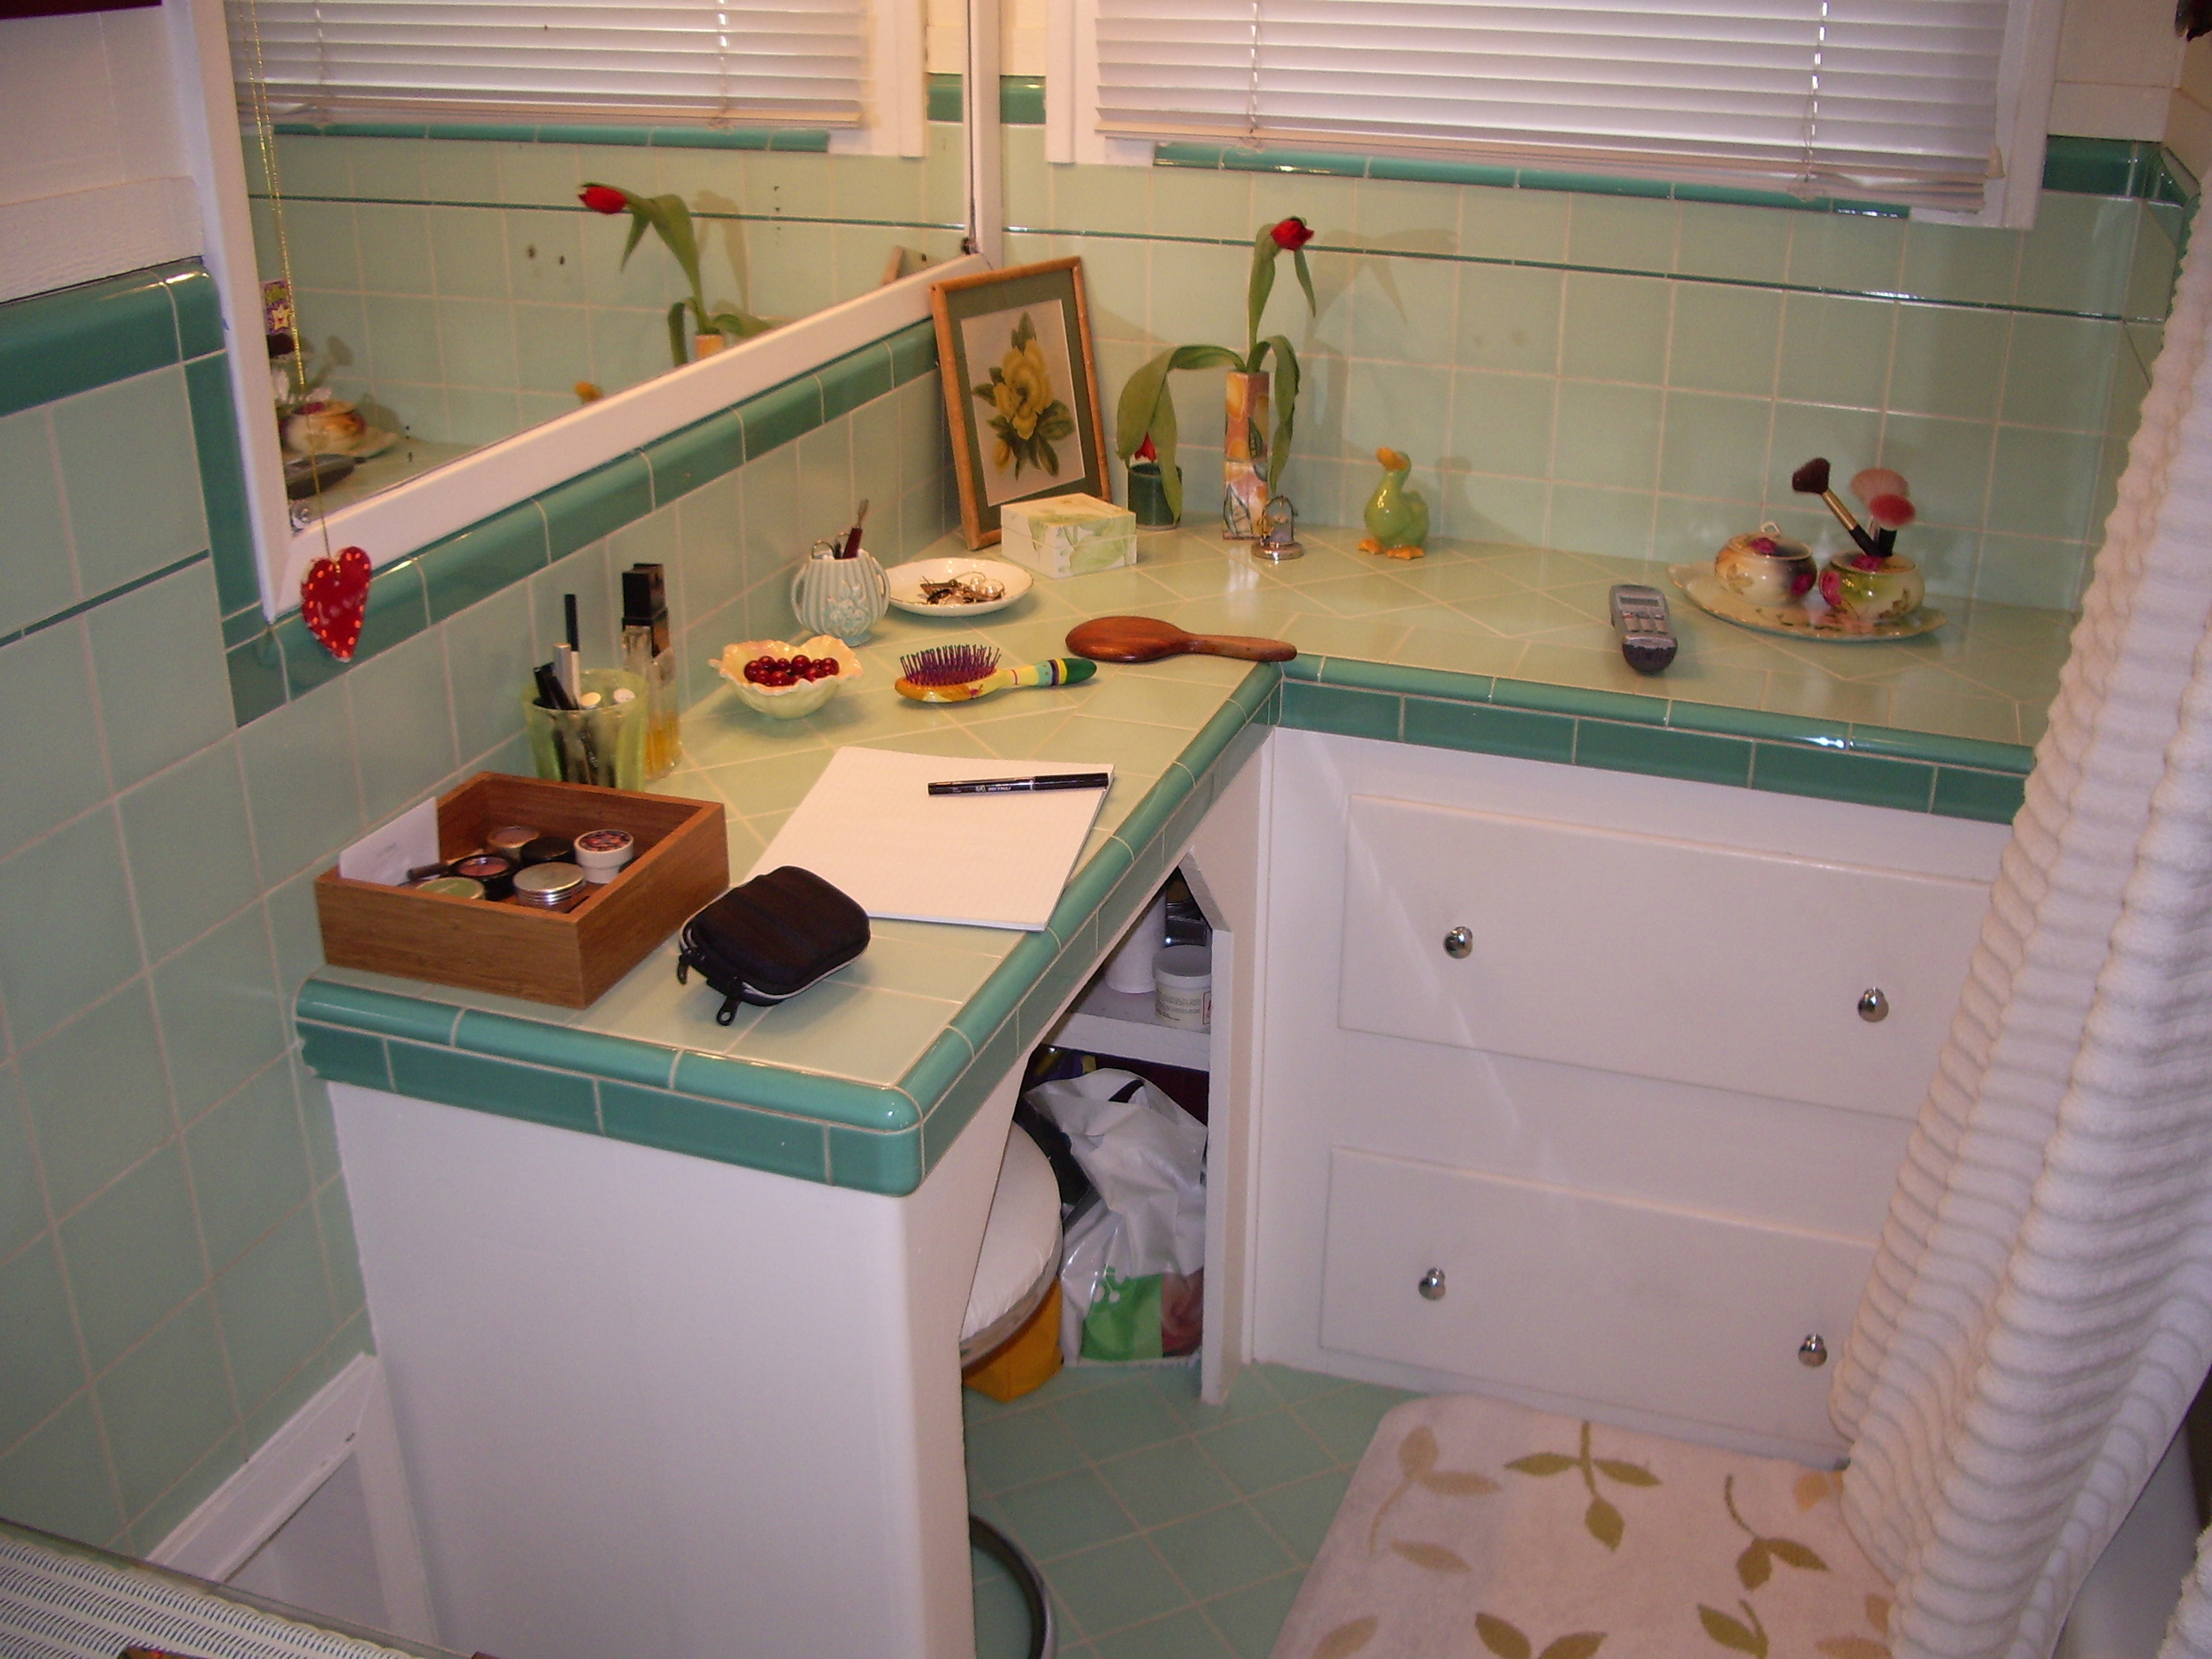 Before:Makeup counter and cabinet.